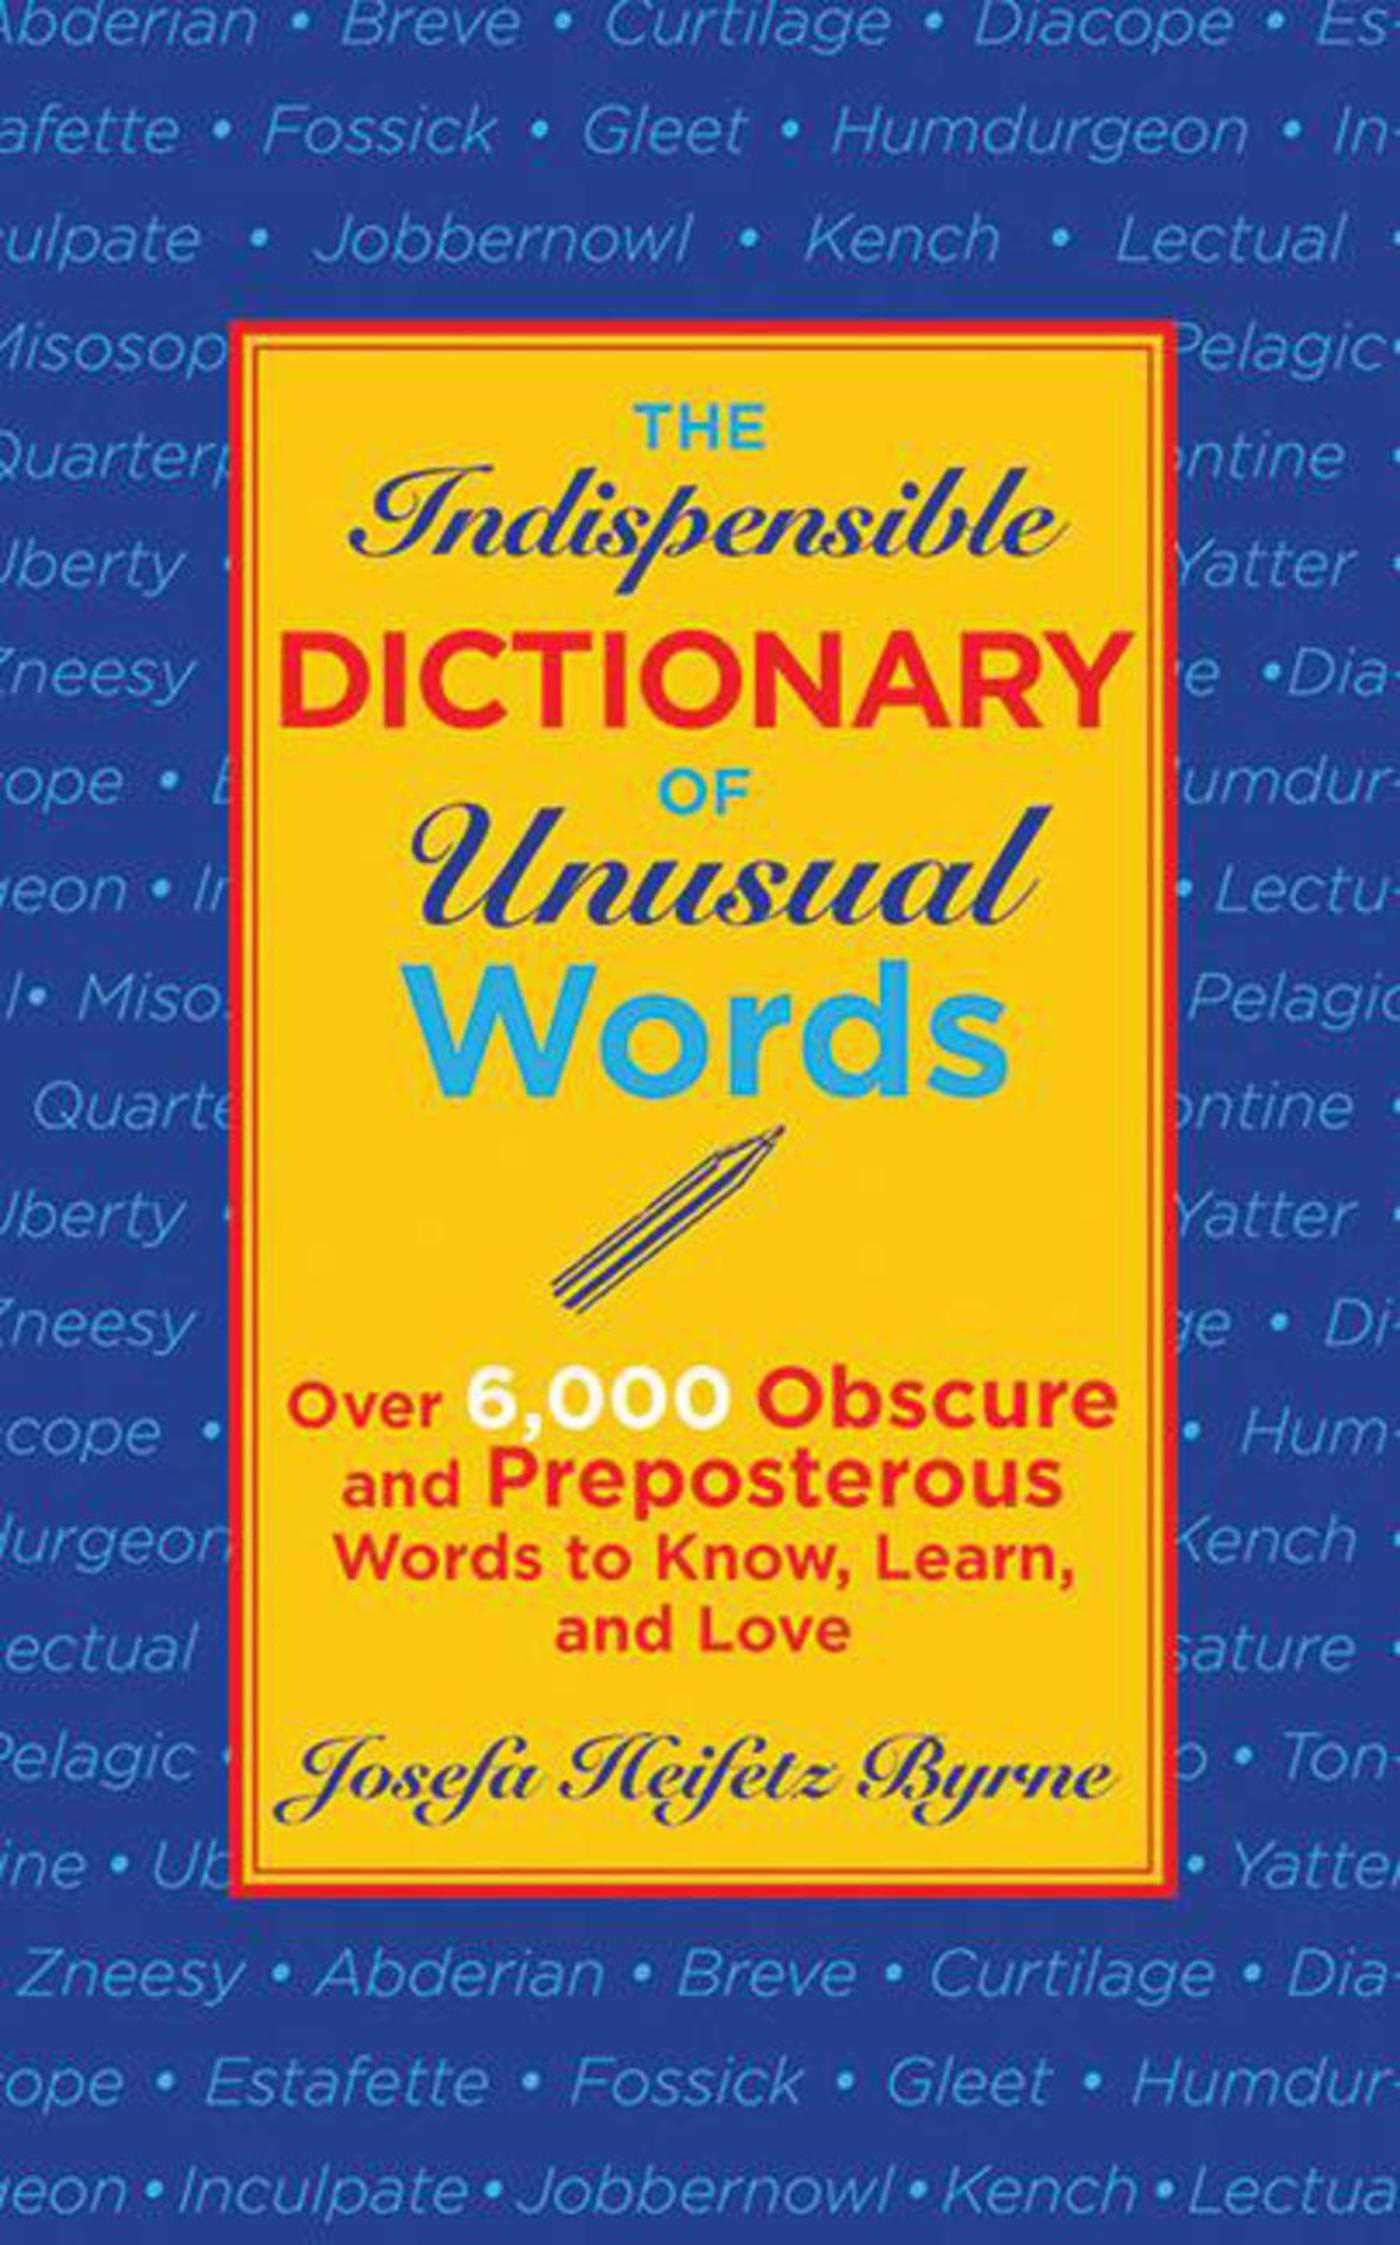 The Indispensable Dictionary of Unusual Words: Over 6,000 Obscure and  Preposterous Words to Know, Learn, and Love Paperback – Jul 1 2012